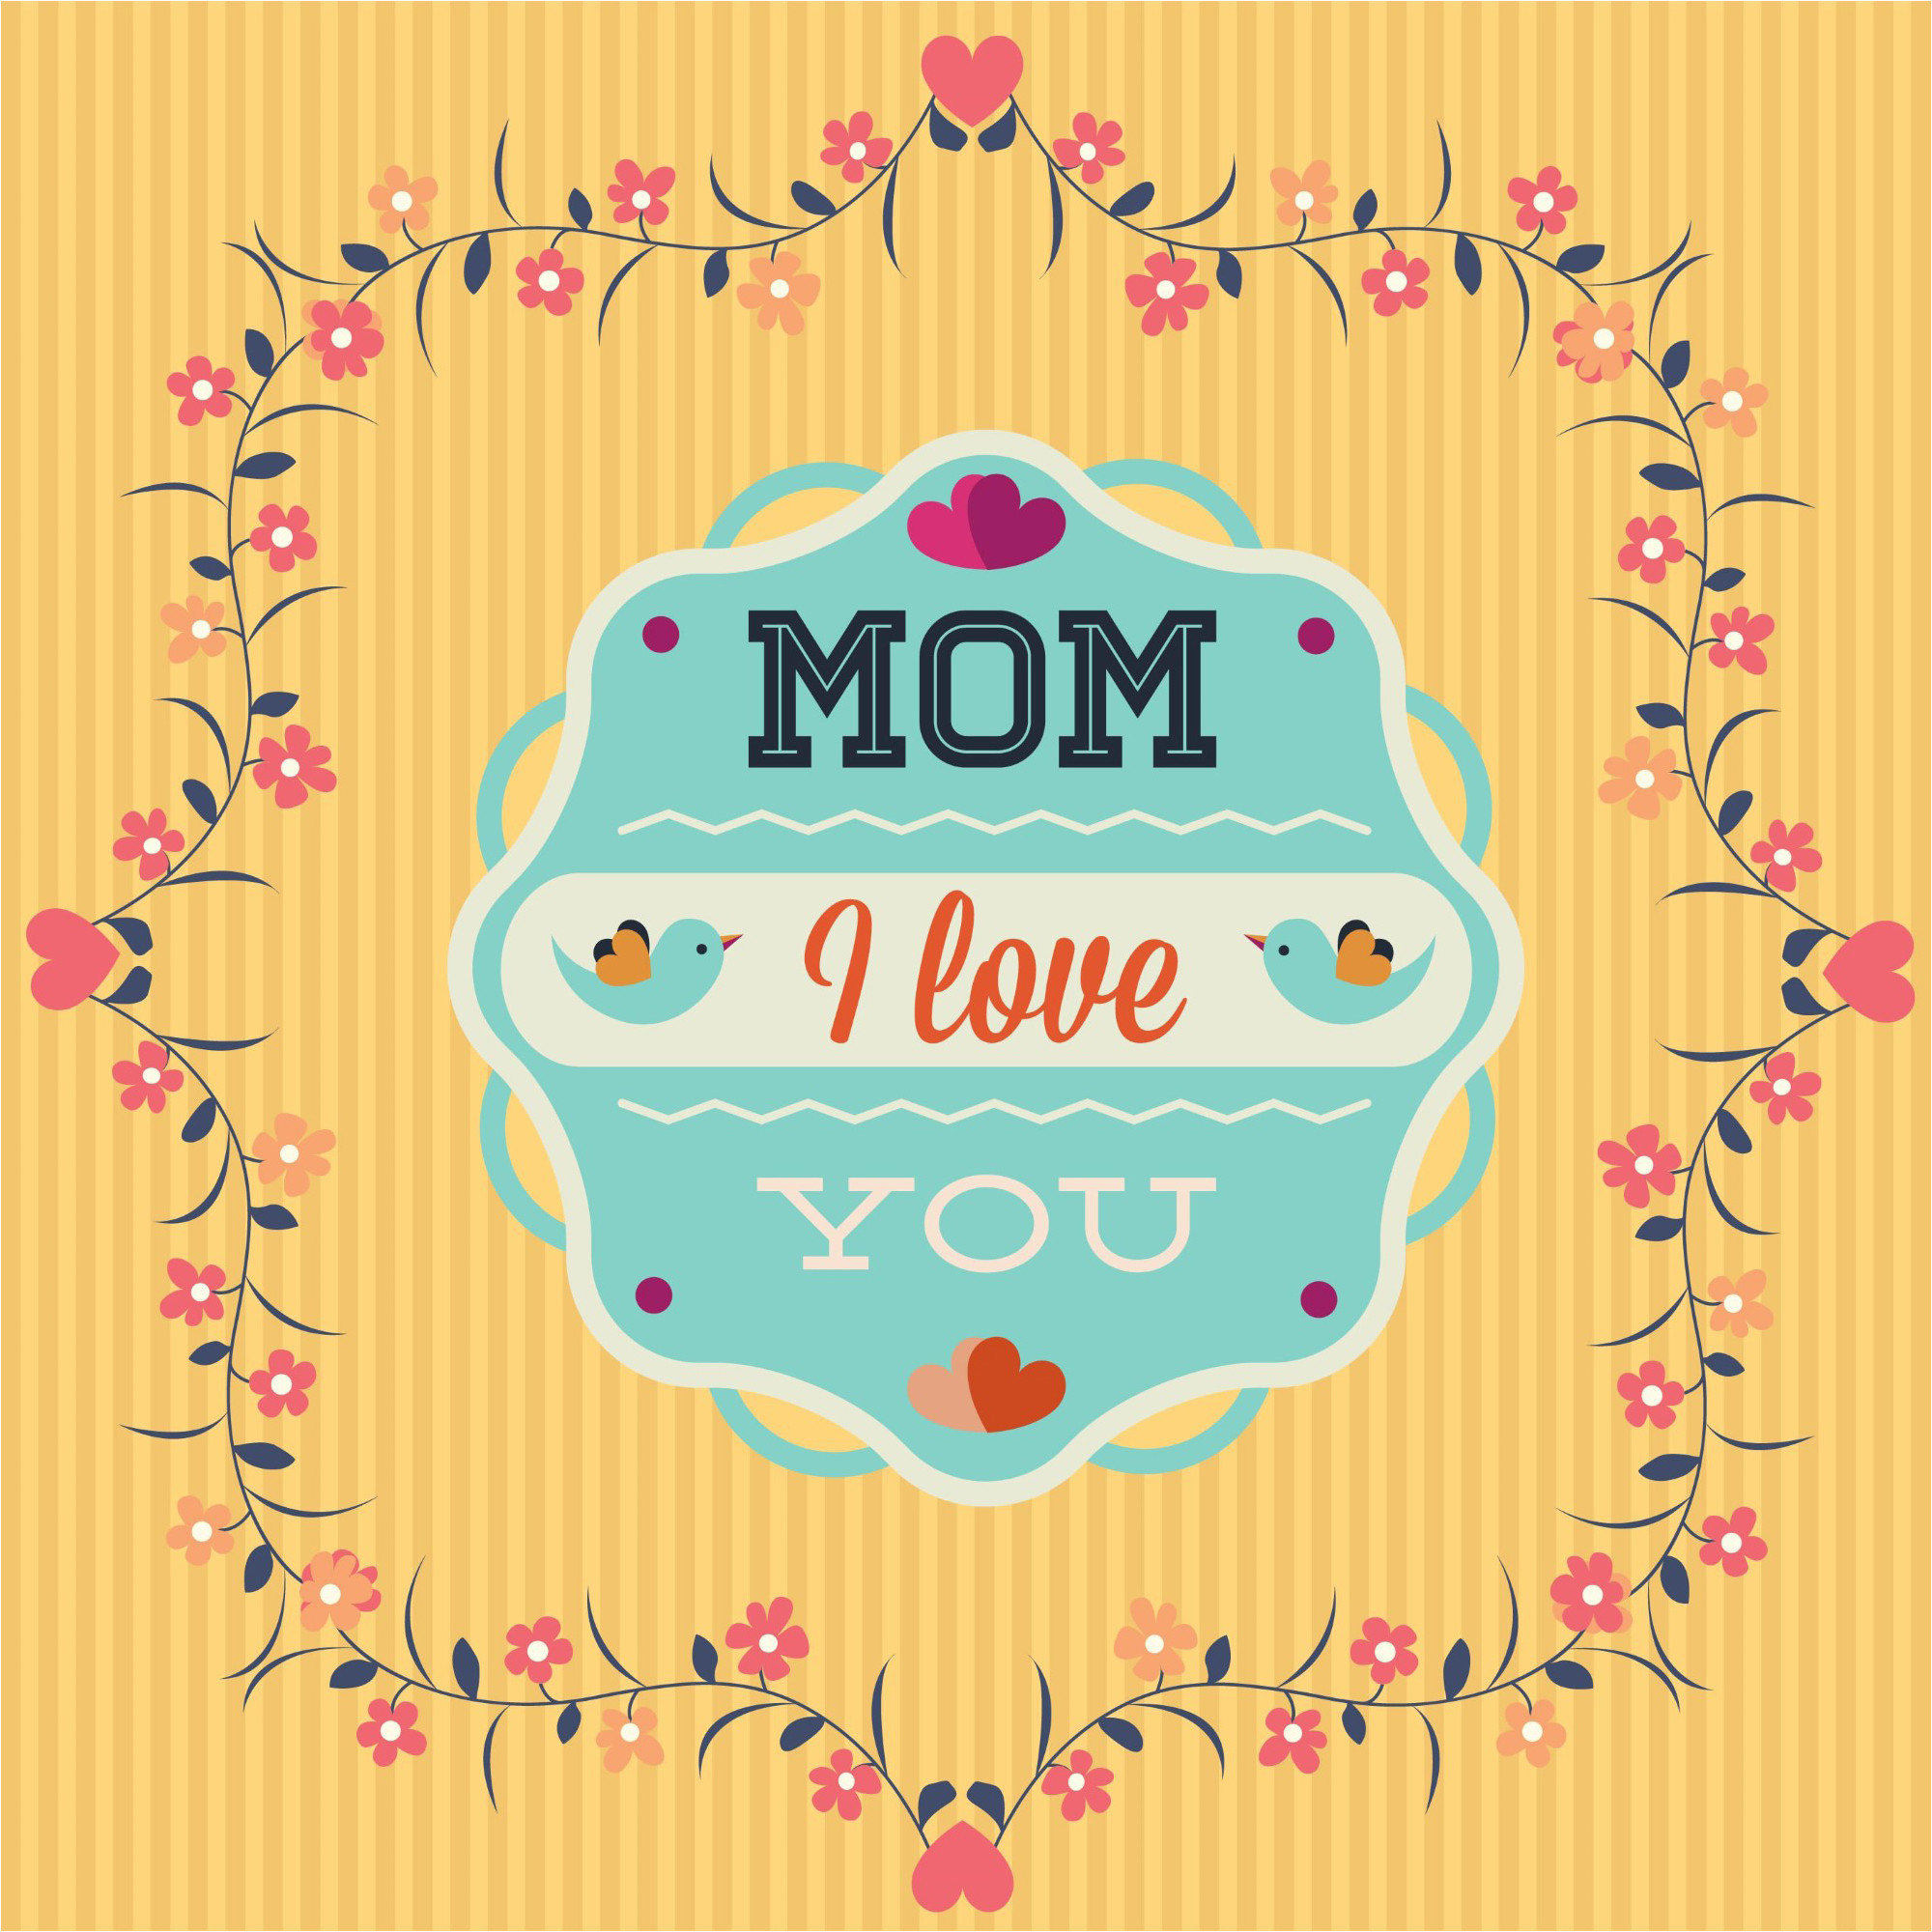 I Love You Mom Images HD